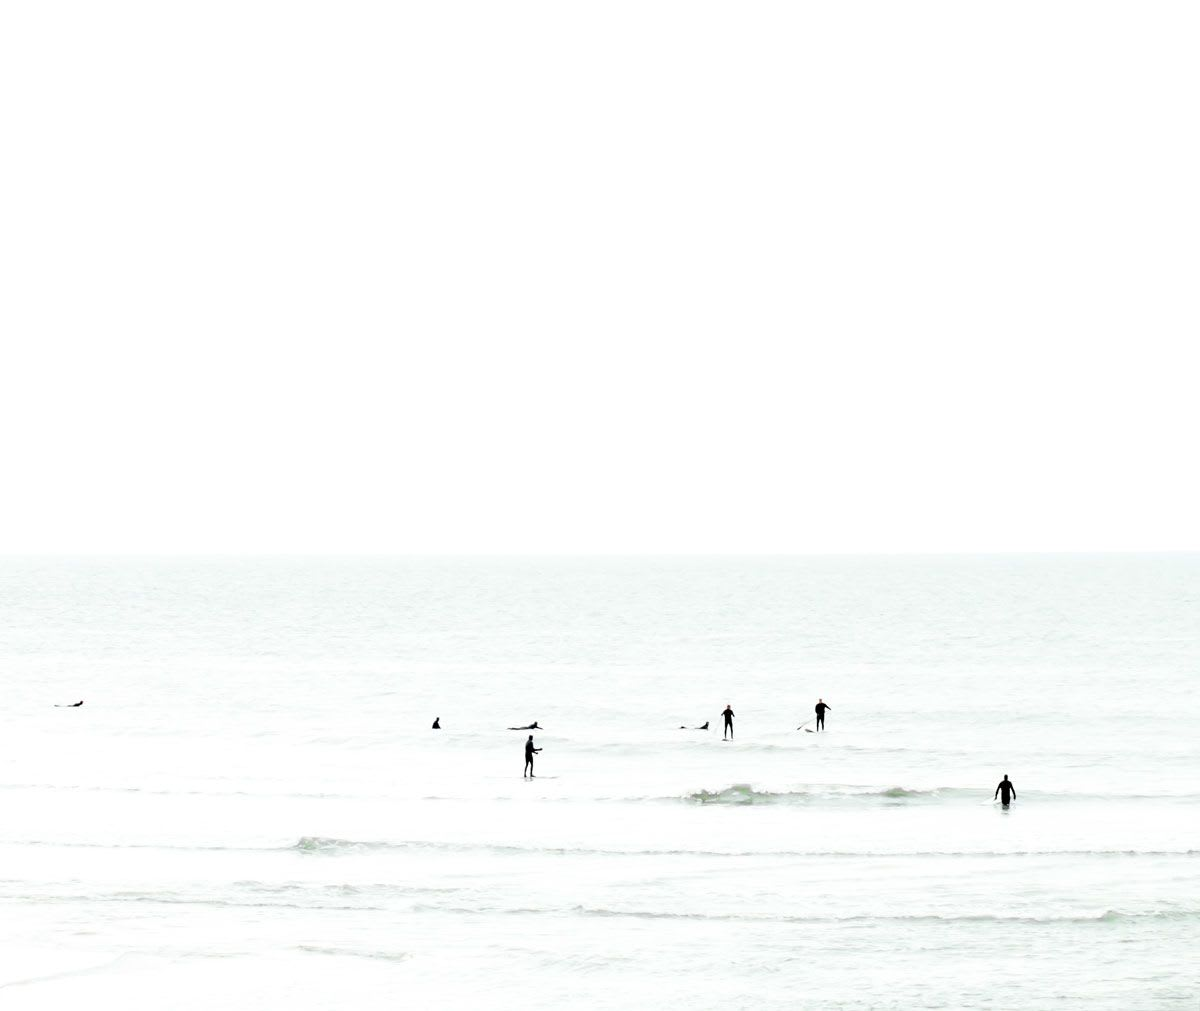 Photography by Cattie Coyle Photography seen at Private Residence, New York - Surfer No. 2 and Waiting No. 5